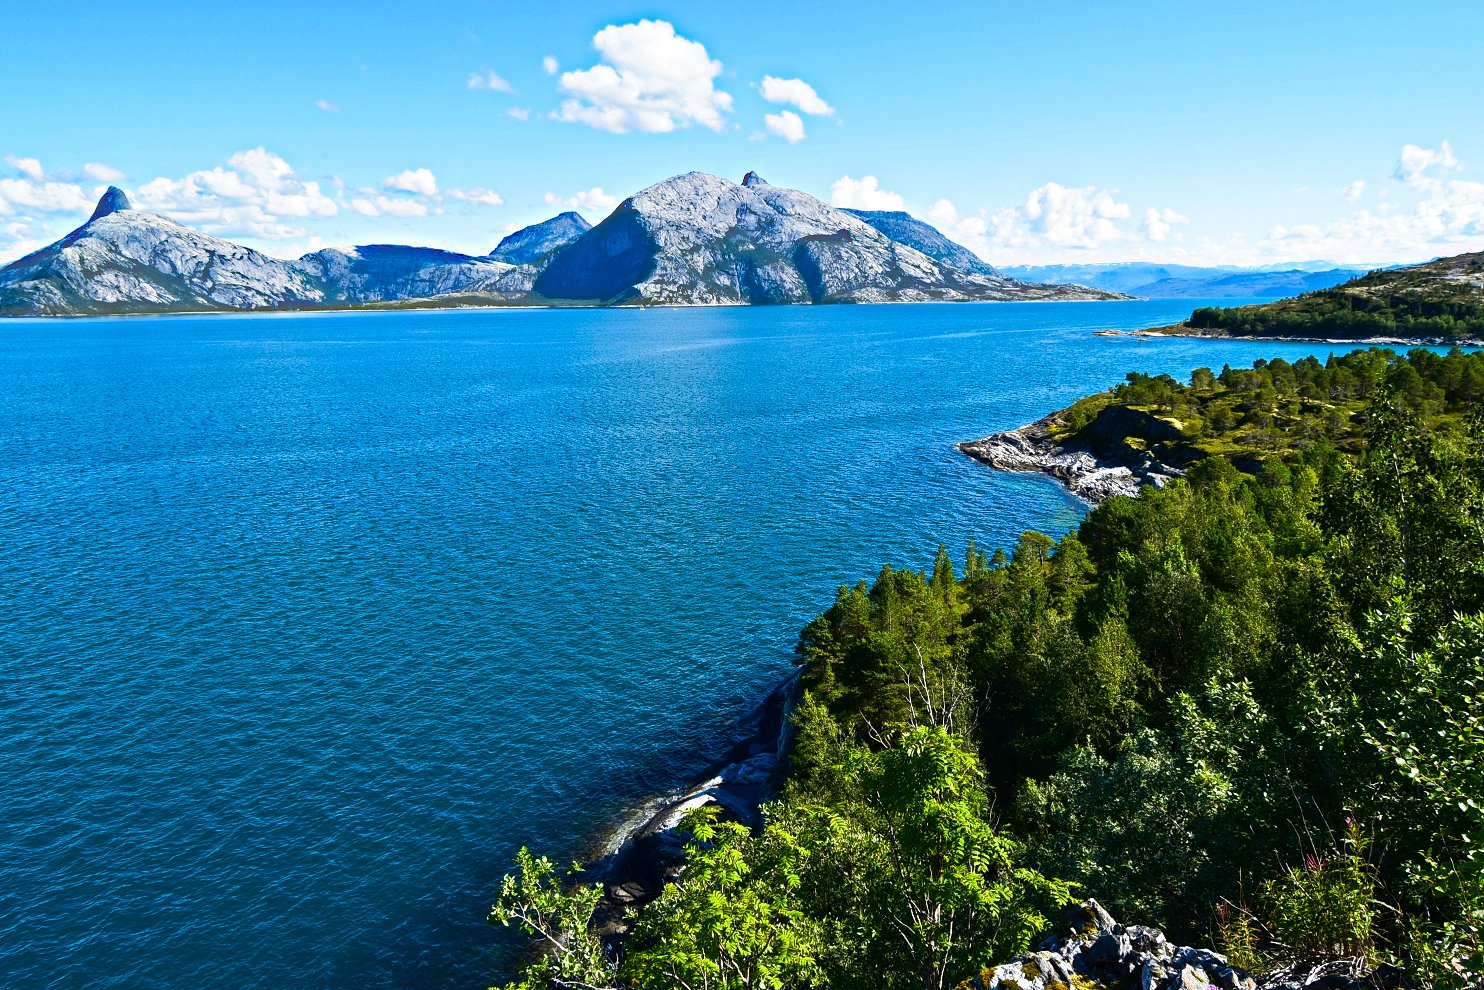 View from Kjerringøy to Folda